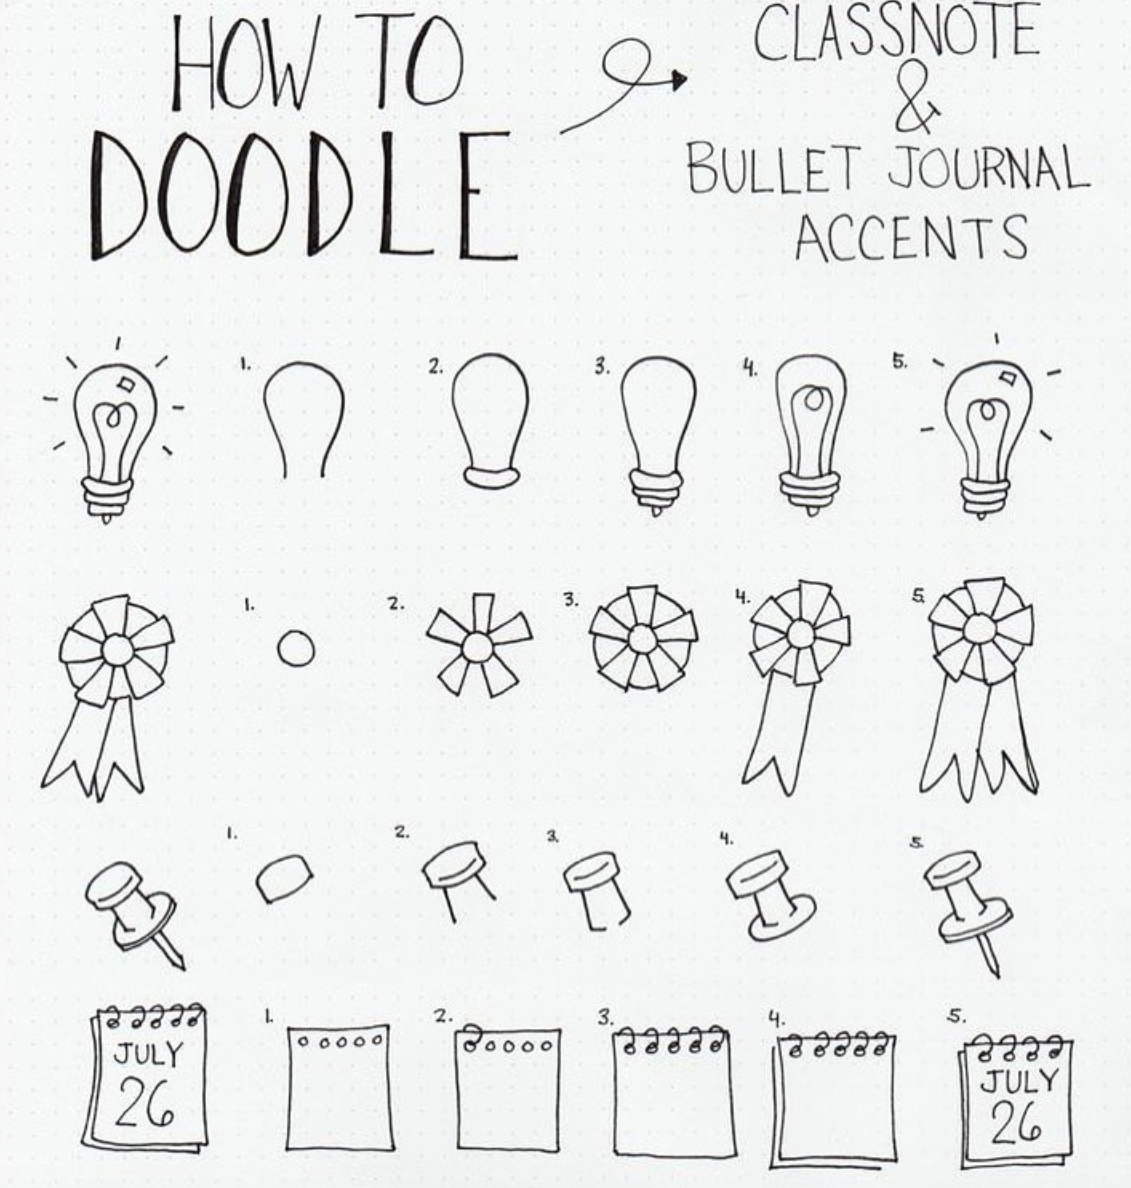 doodles draw cute doodle easy notebook journal bullet simple notes class date bujo note accents anyone notebooks board put idea